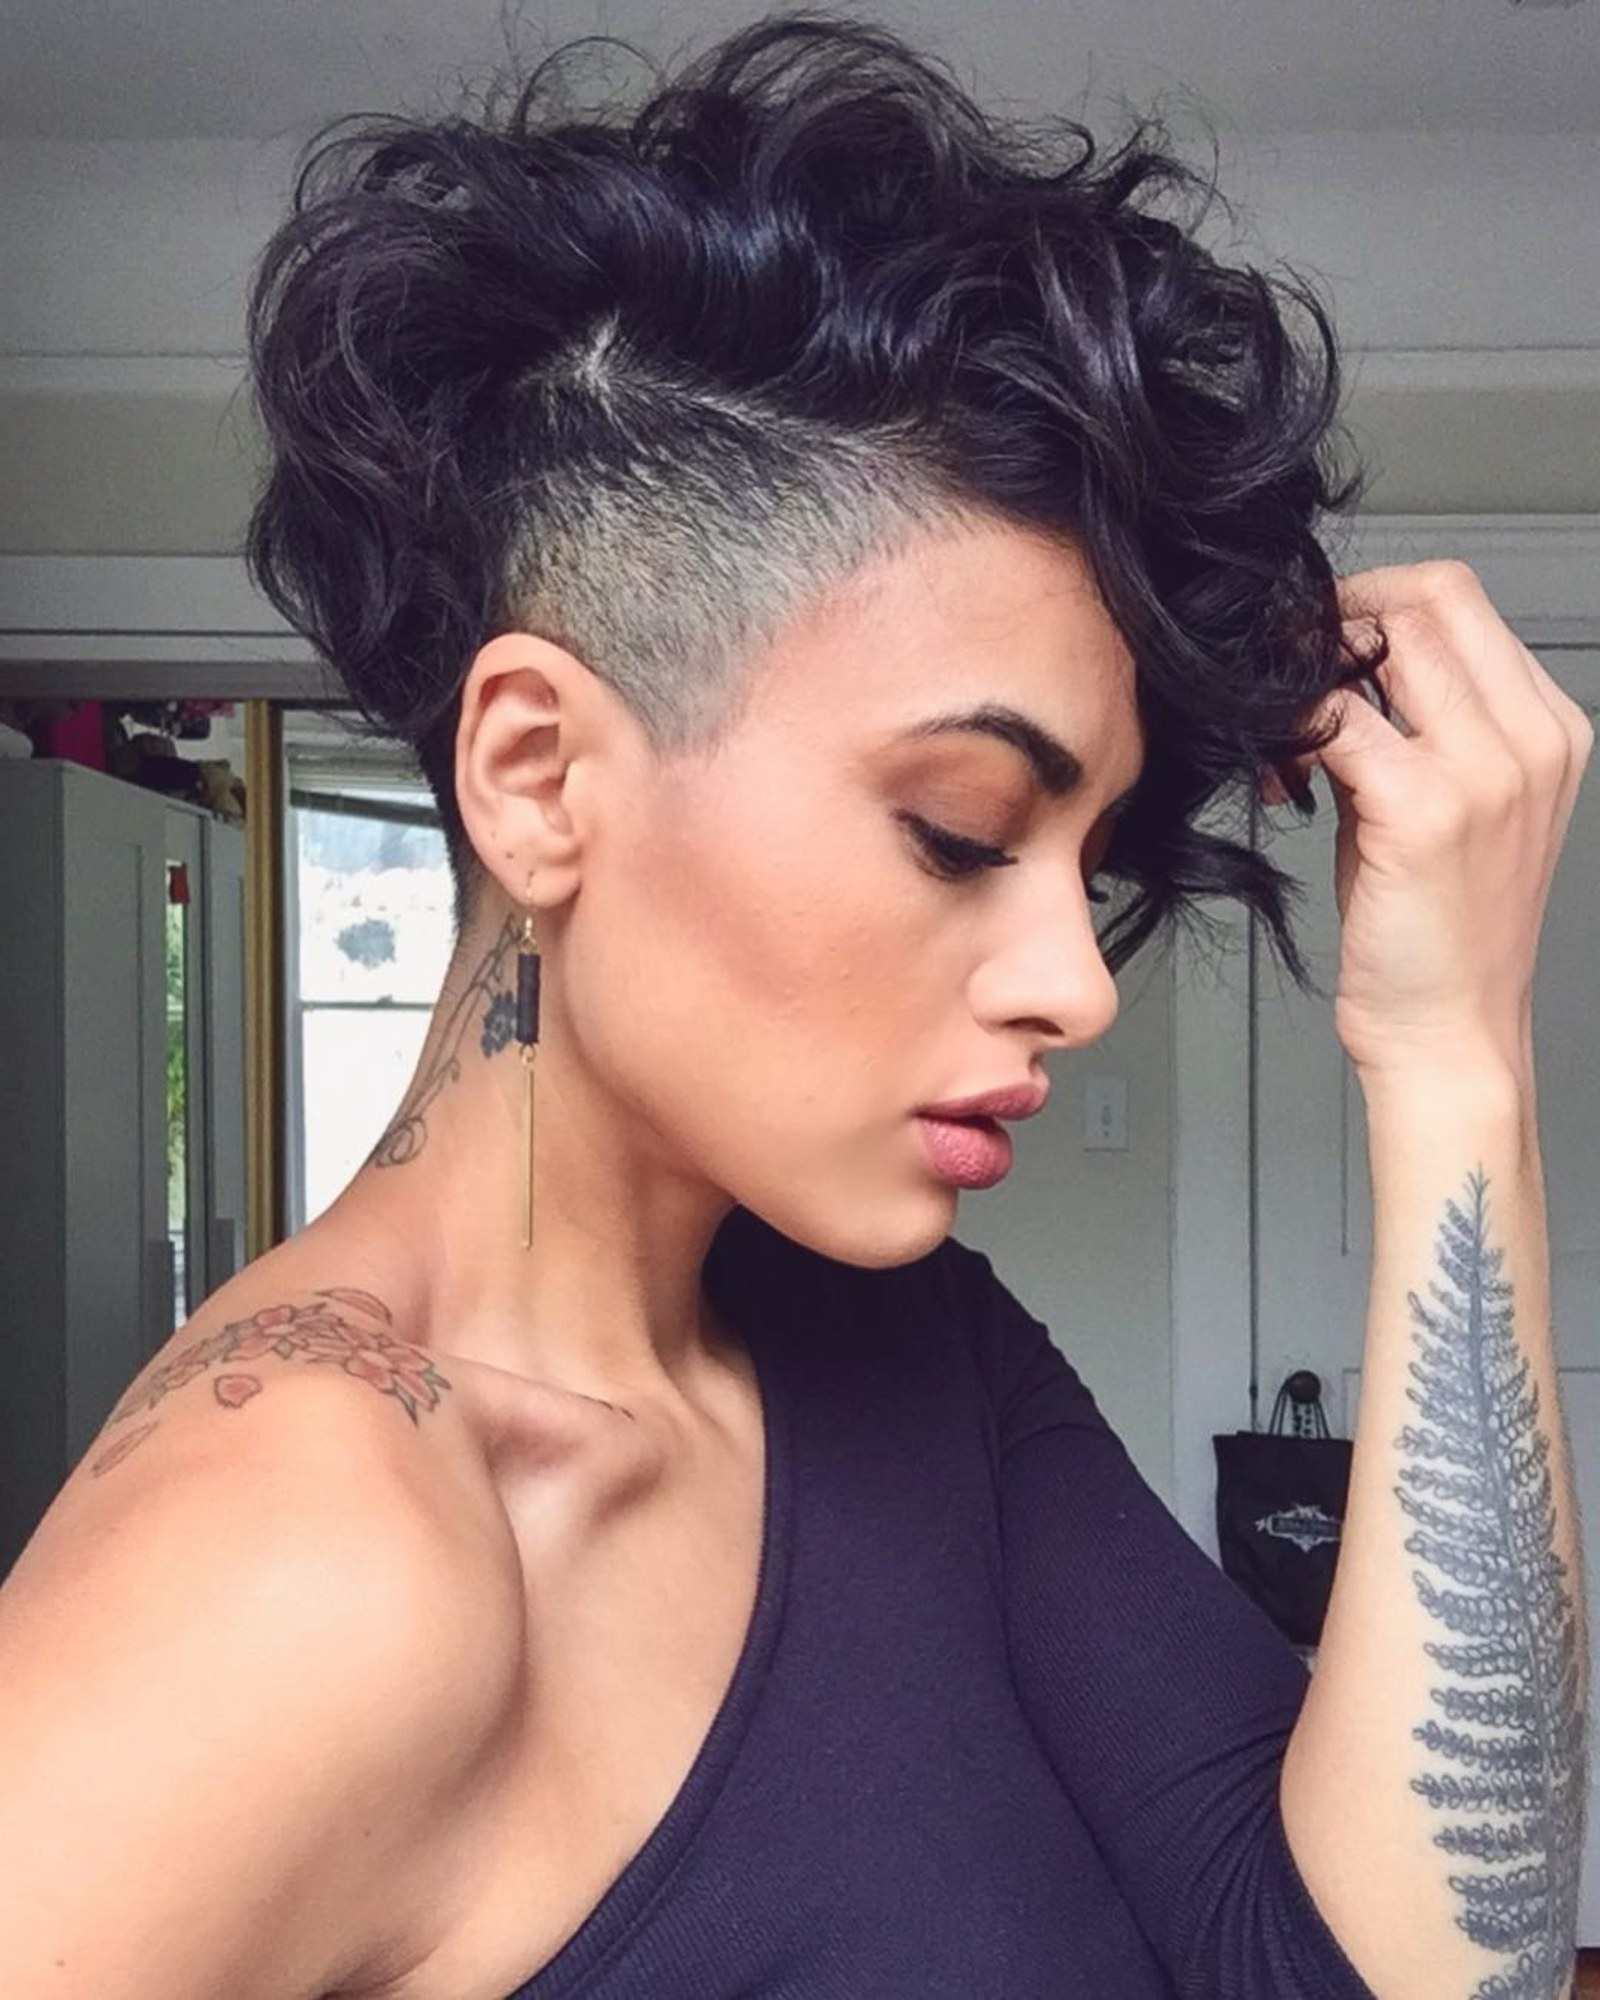 28 Curly Pixie Cuts That Are Perfect For Fall 2017 – Glamour Throughout Curly Black Tapered Pixie Hairstyles (View 6 of 25)